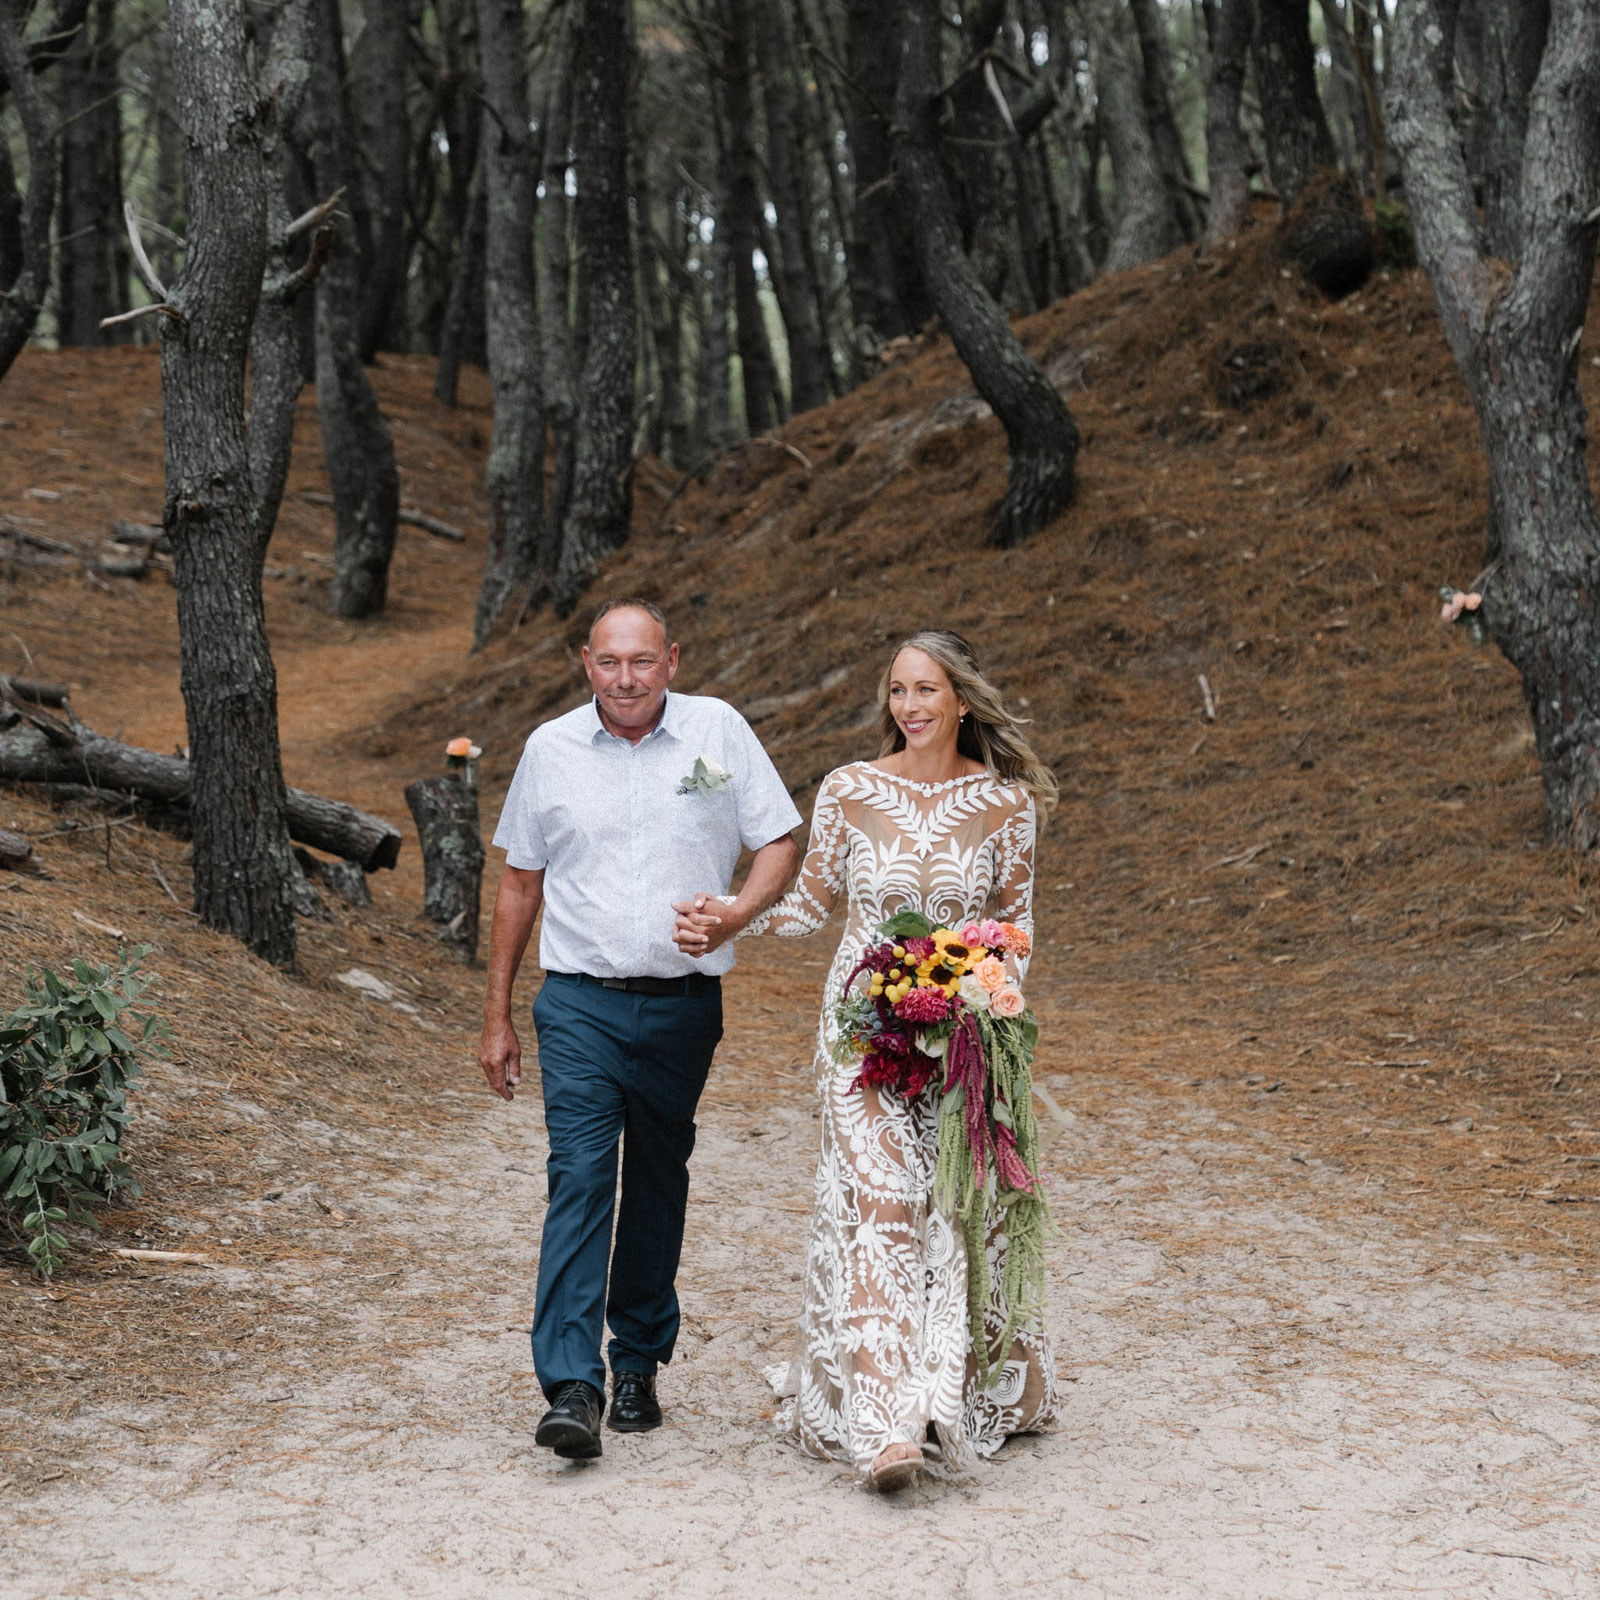 newfound-a-b-opoutere-coastal-camping-coromandel-wedding-wedding-photographer-79